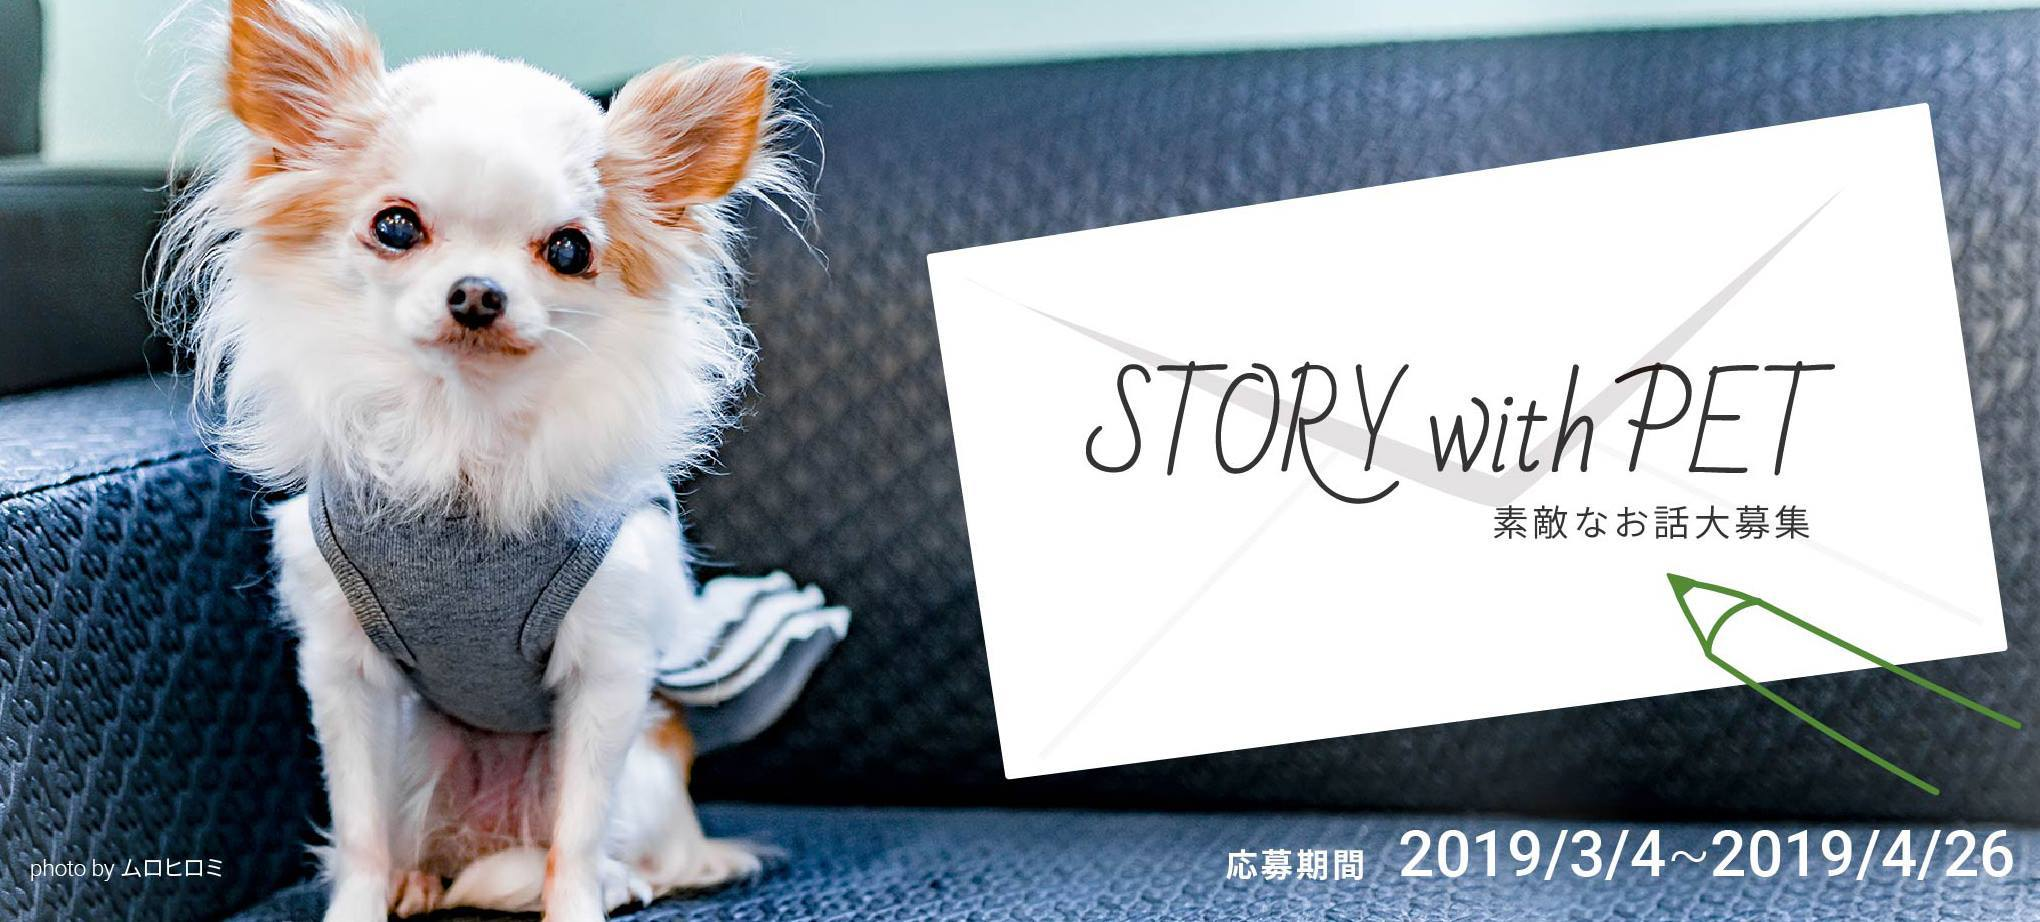 STORY with PET